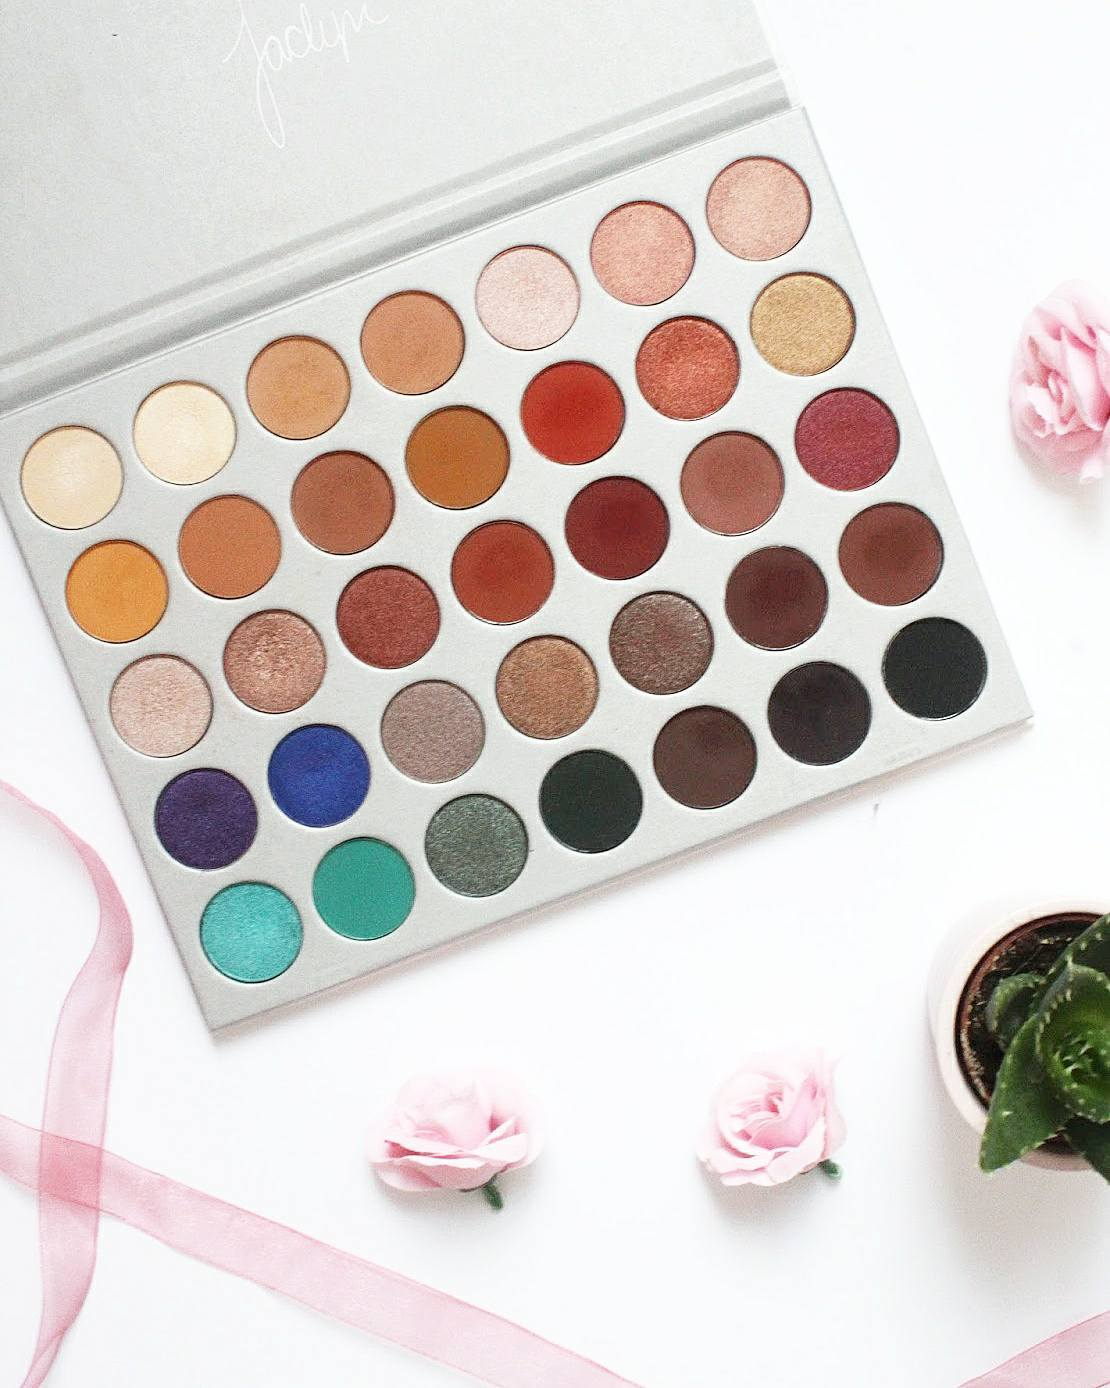 Morphe Brushes x Jaclyn Hill Eyeshadow Palette Review and Swatches